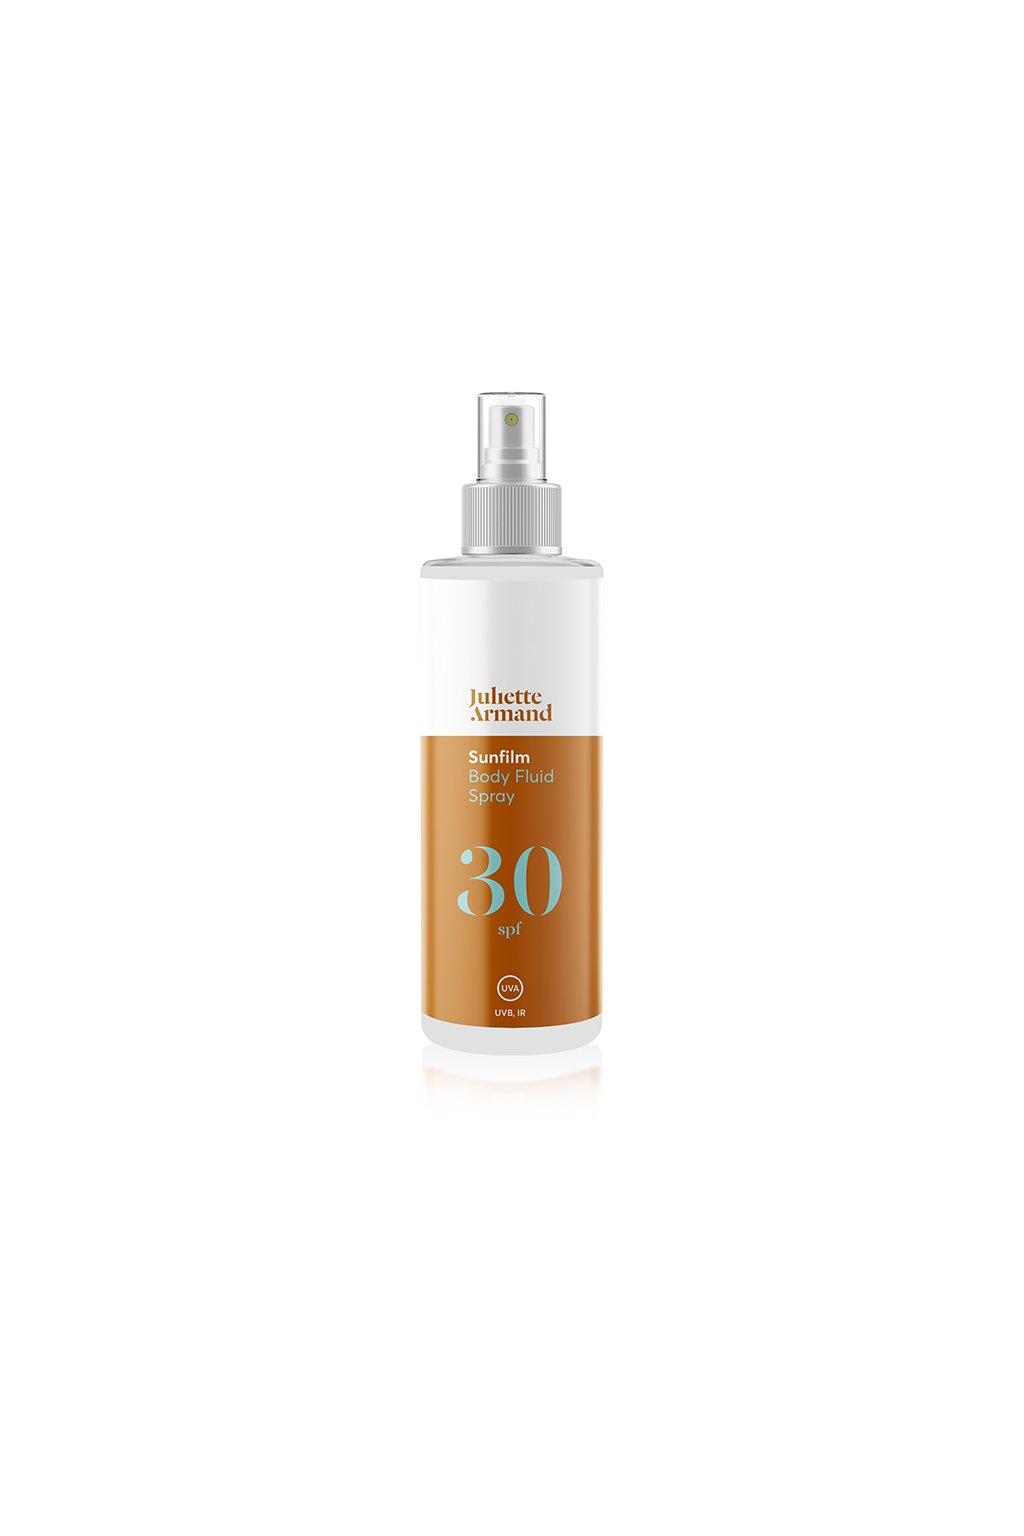 Sunfilm Body Fluid Spray SPF 30 200ml 850